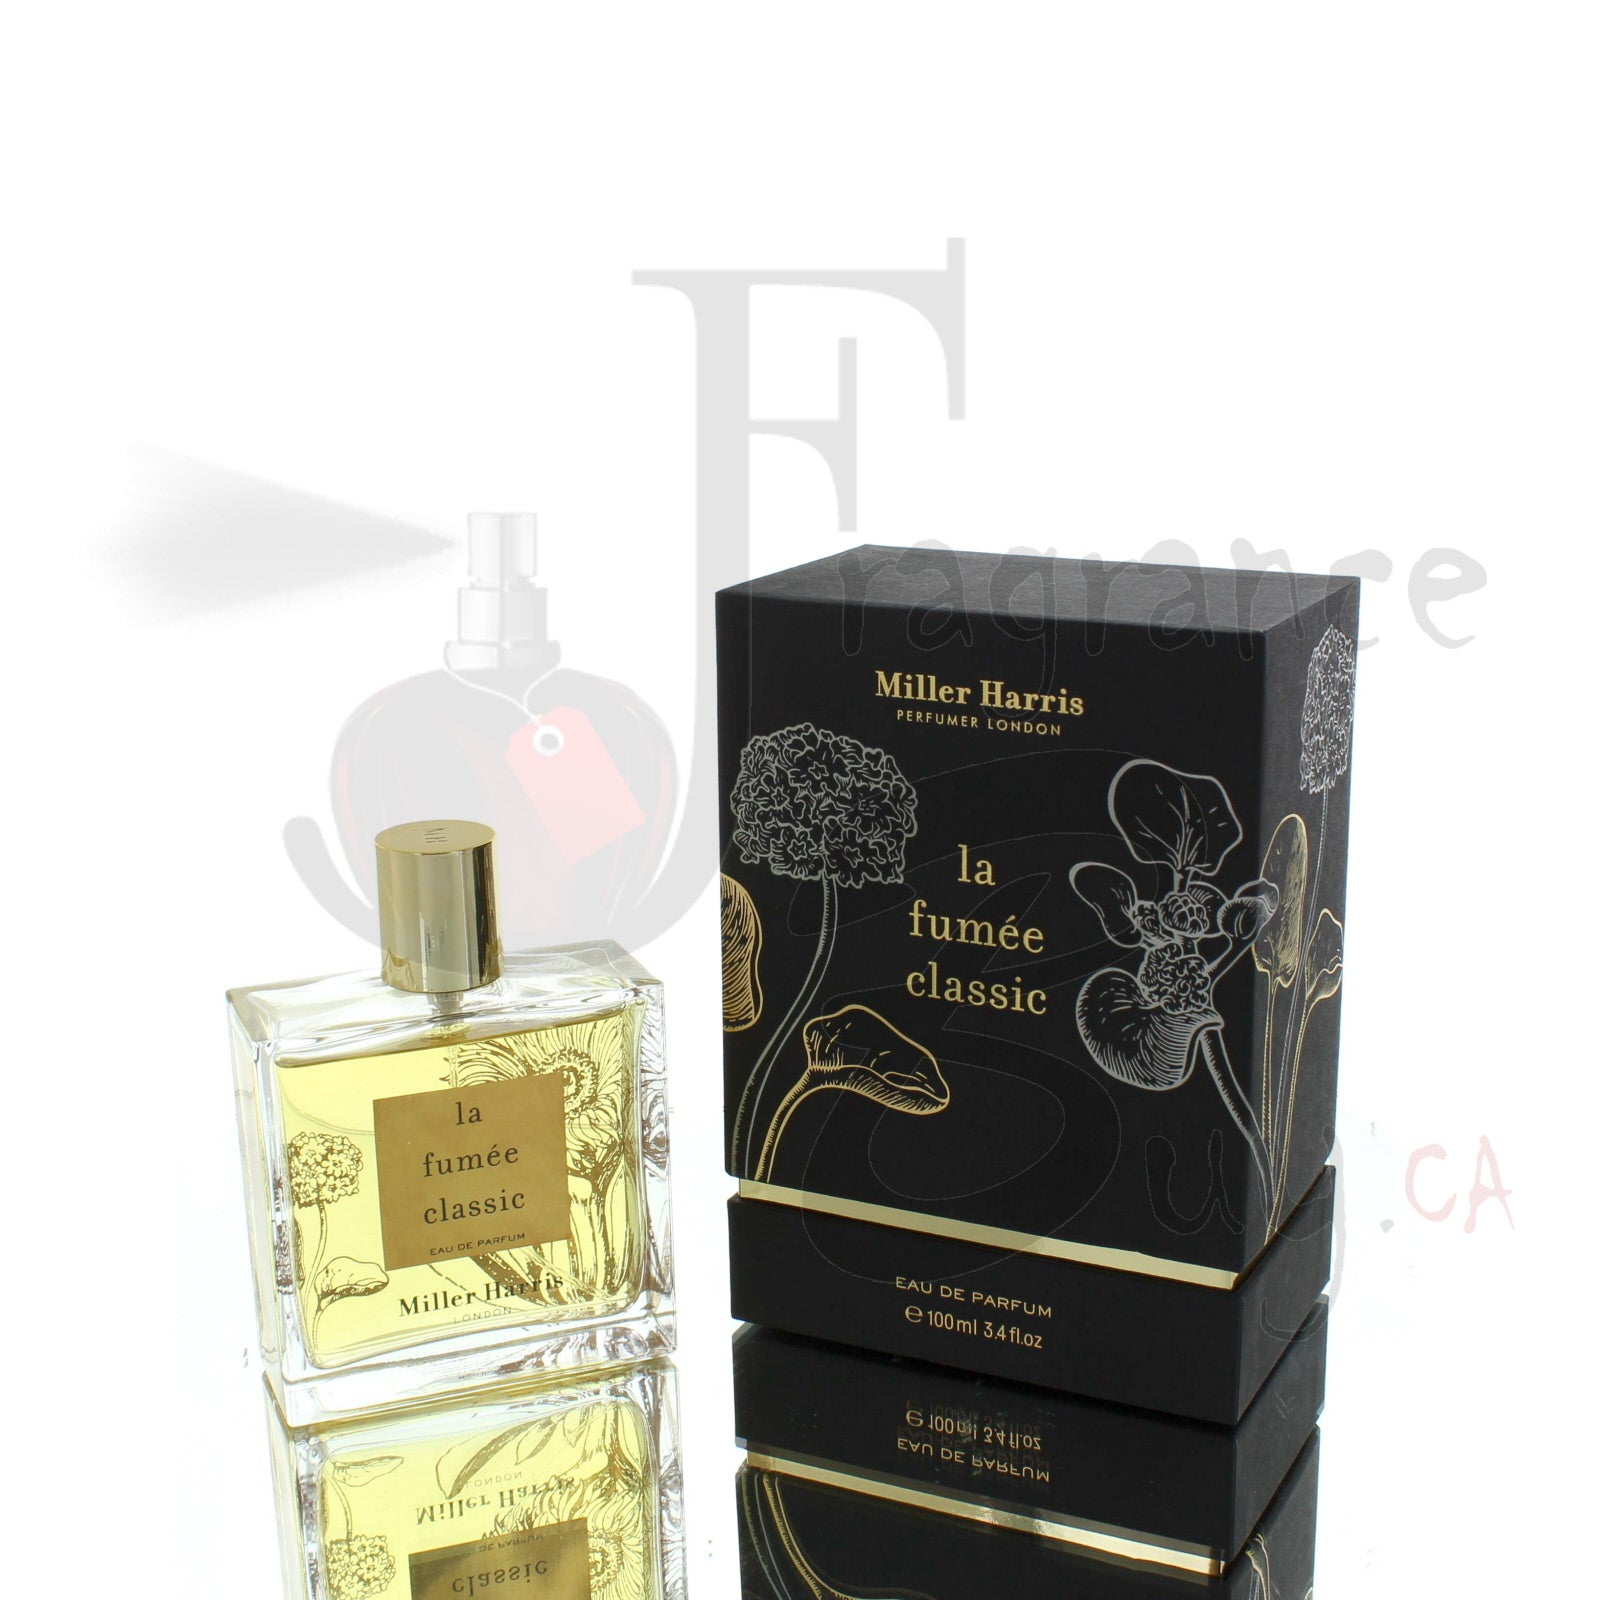 Miller Harris La Fumee Classic For Man/Woman